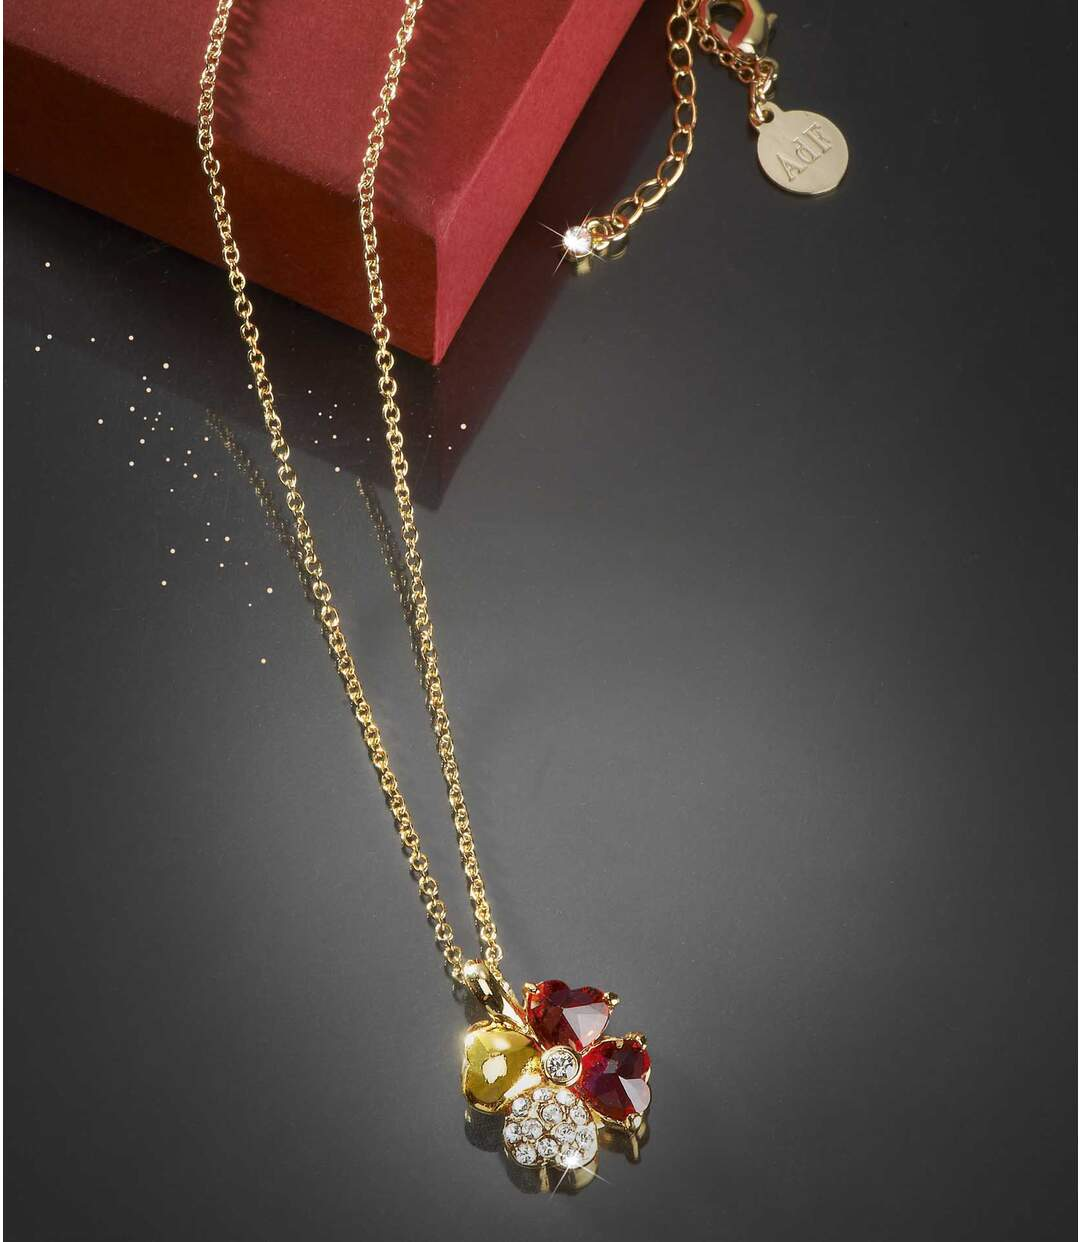 Women's Lucky Charm Necklace - Embellished with Swarovski® crystals